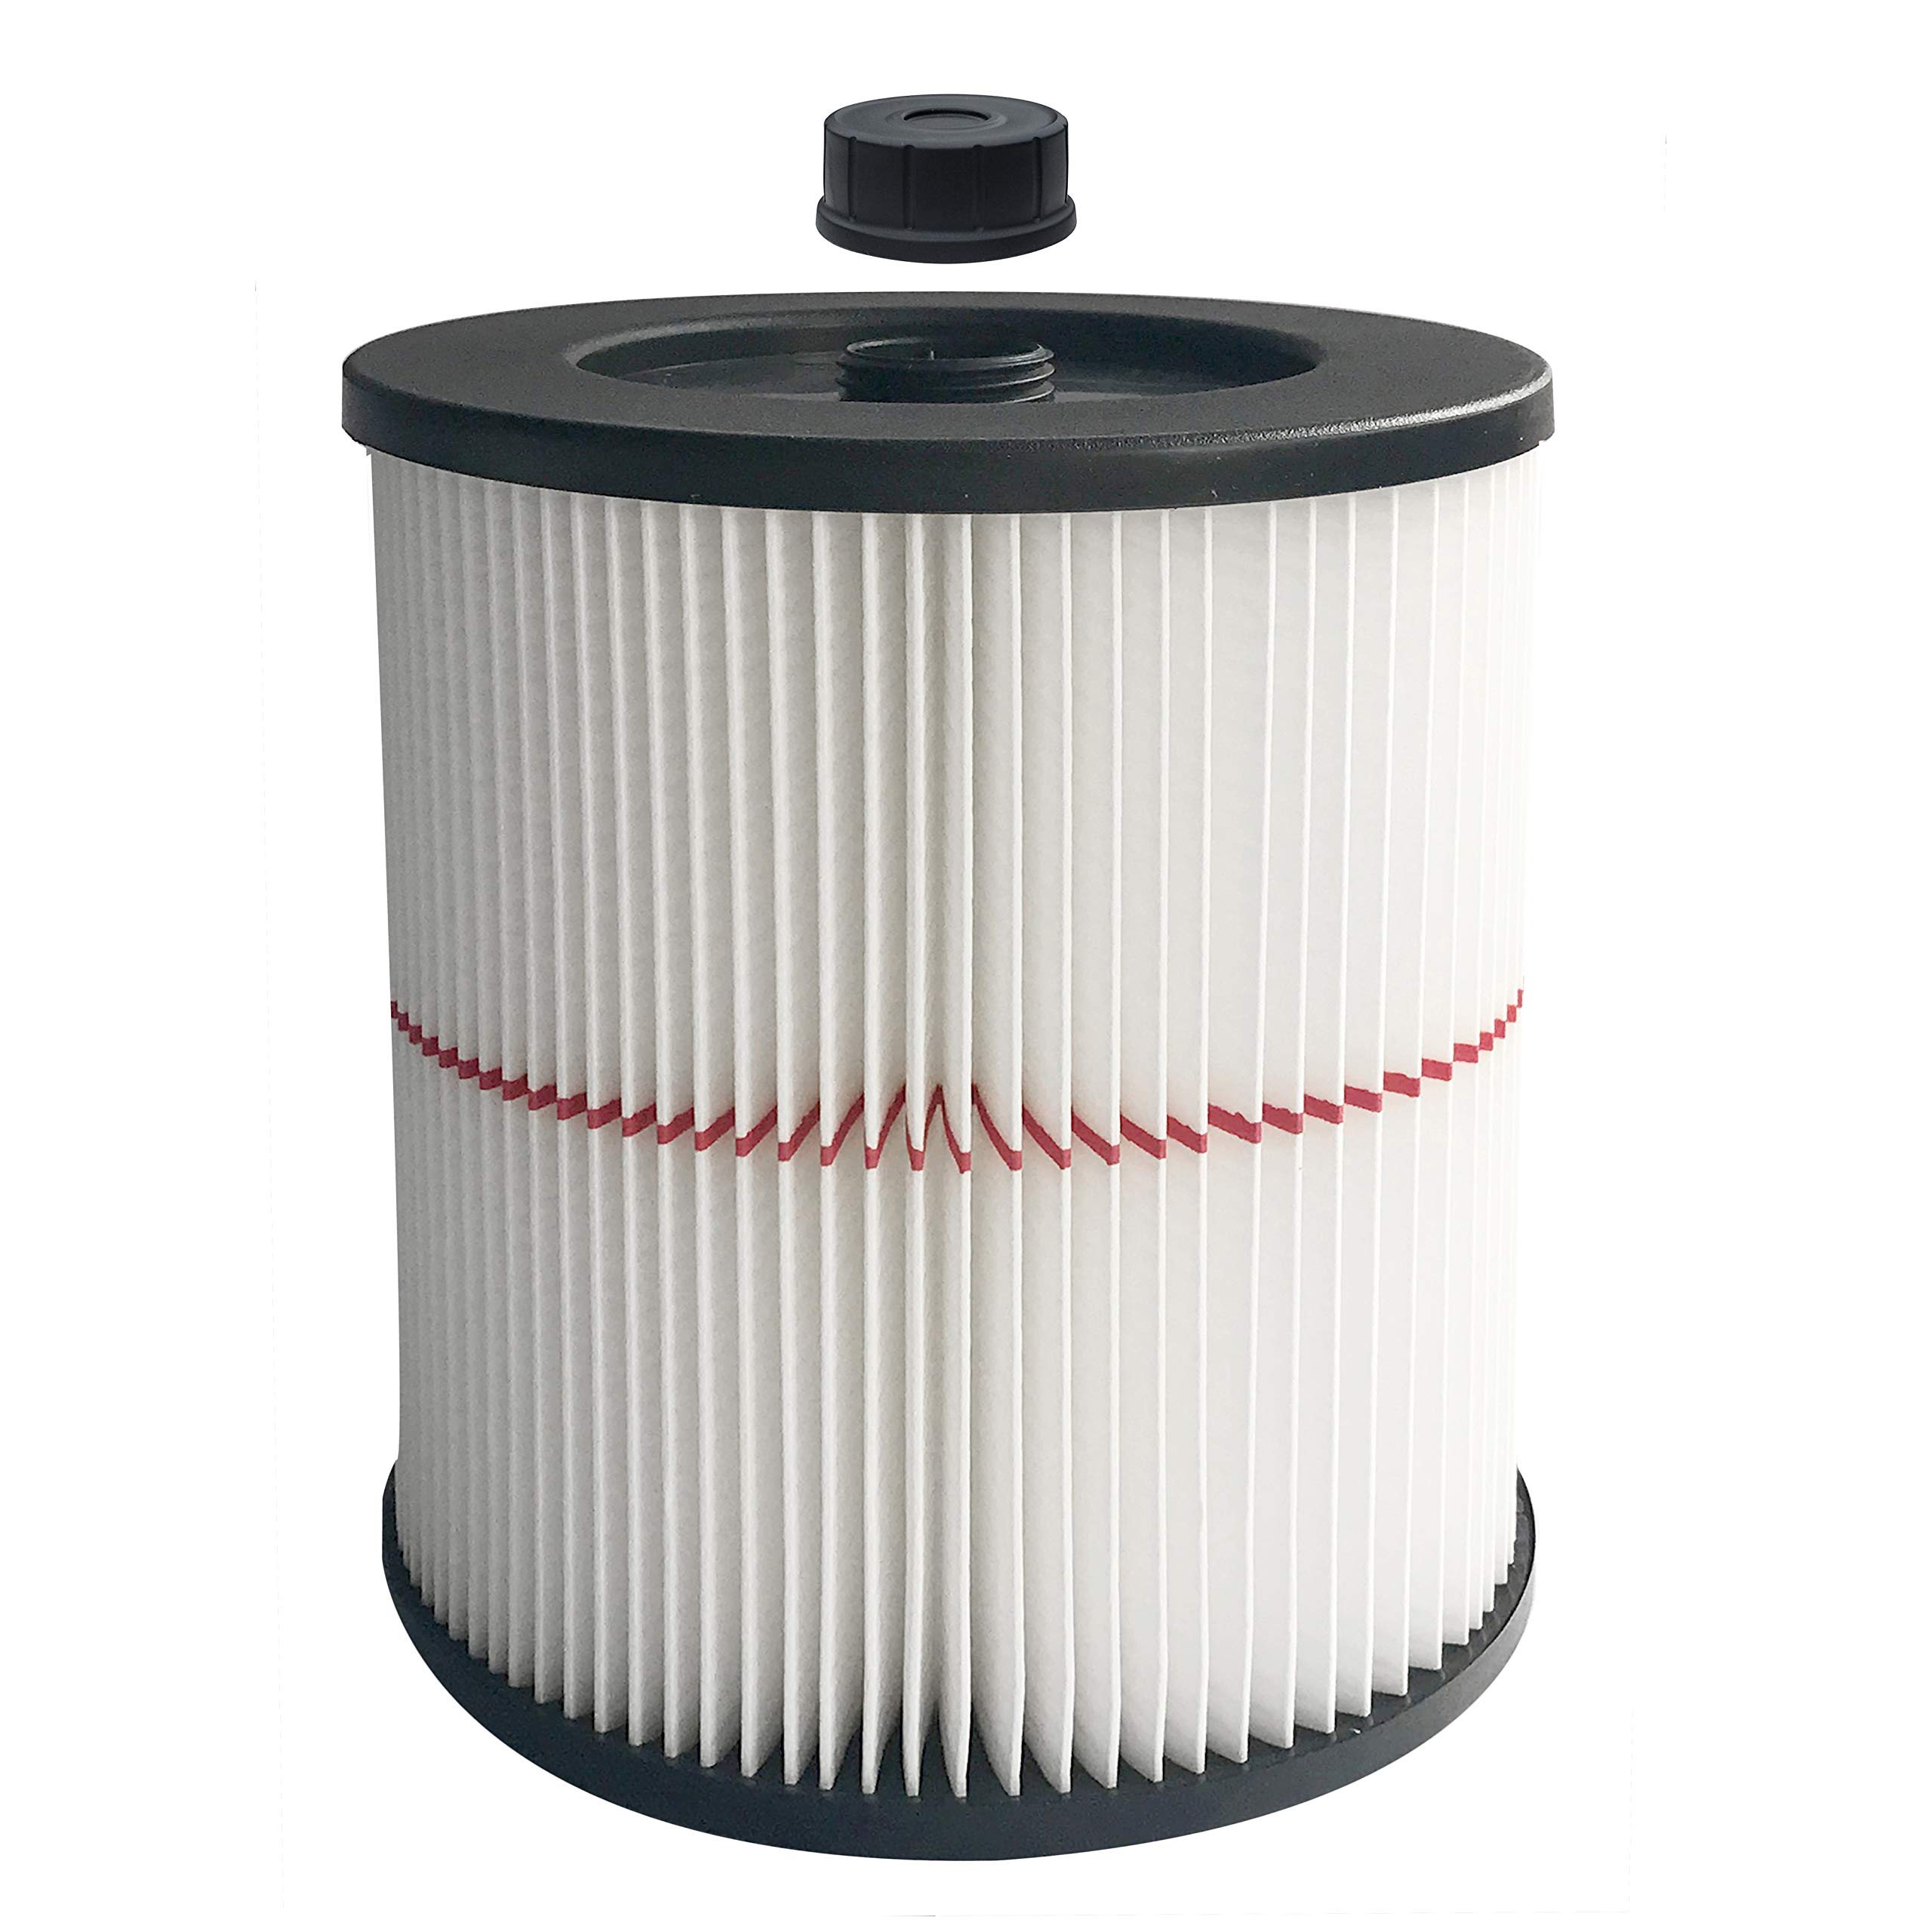 Cartridge Replacement Filter fit Shop Vac Craftsman 9-17816 Wet/Dry Vacuum Cleaner for 5 Gallon & Larger Vac